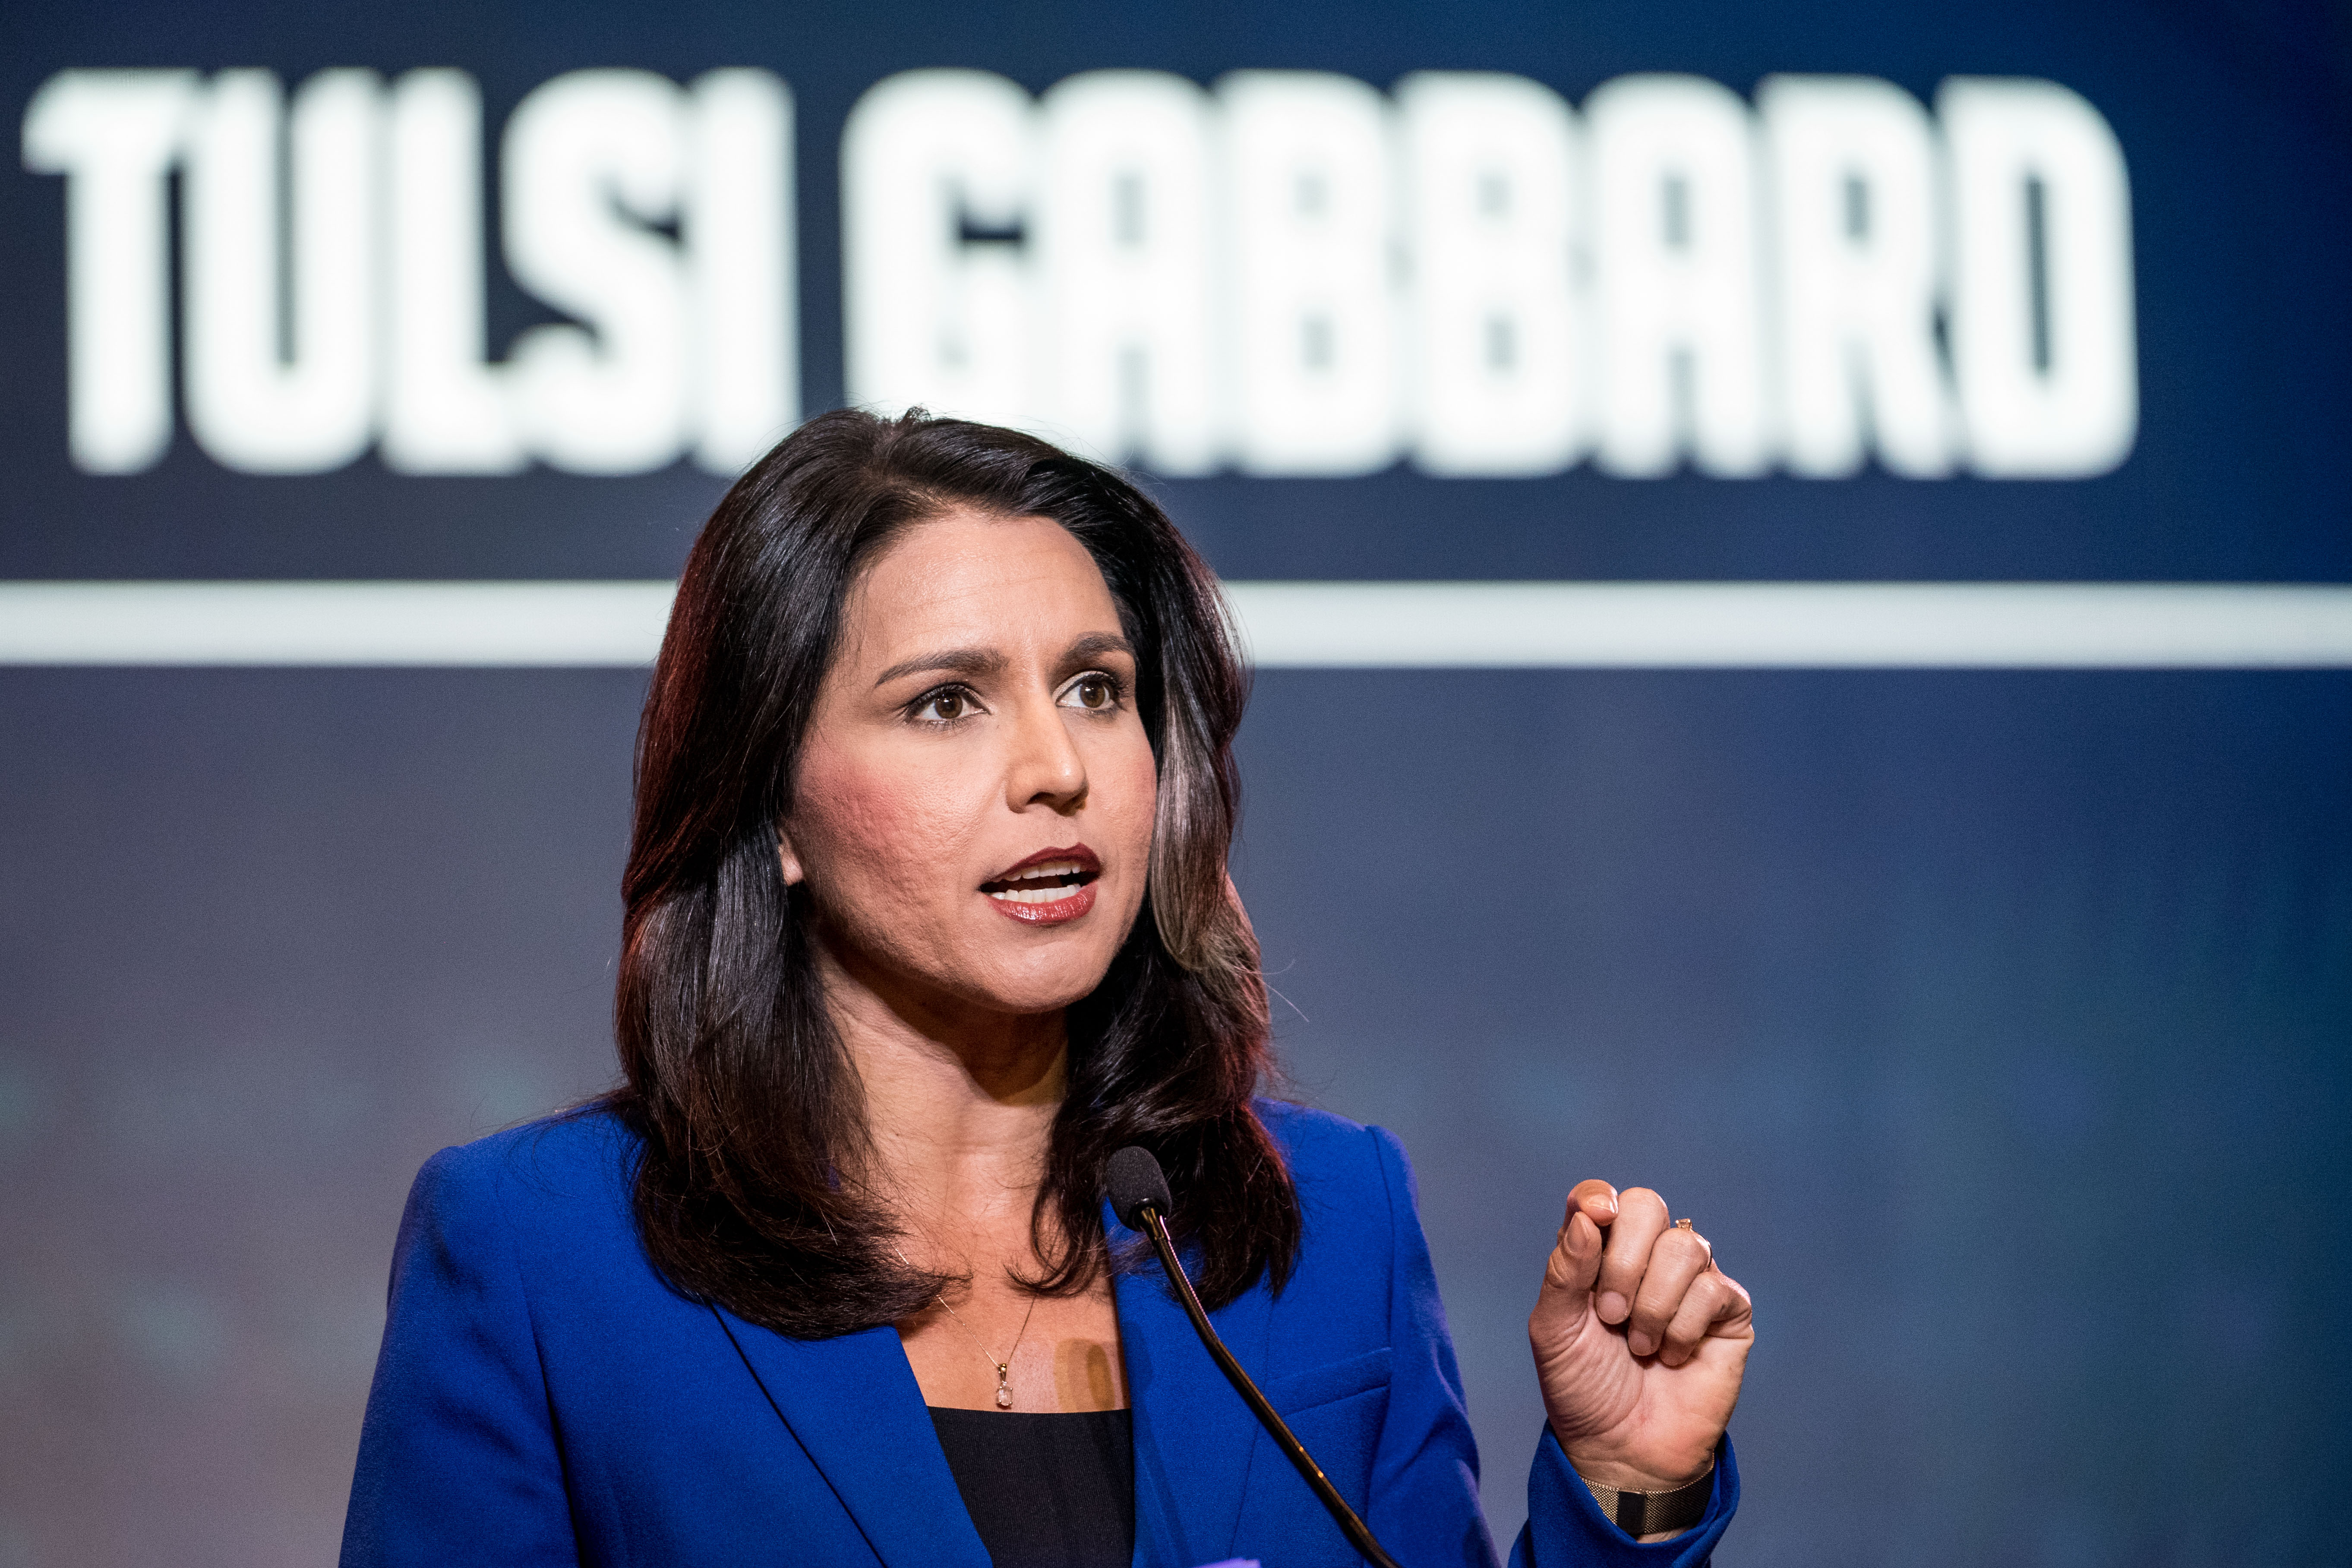 COLUMBIA, SC - JUNE 22: Democratic presidential candidate Rep. Tulsi Gabbard (R-HI) speaks to the crowd during the 2019 South Carolina Democratic Party State Convention on June 22, 2019 in Columbia, South Carolina. Democratic presidential hopefuls are converging on South Carolina this weekend for a host of events where the candidates can directly address an important voting bloc in the Democratic primary. (Photo by Sean Rayford/Getty Images)